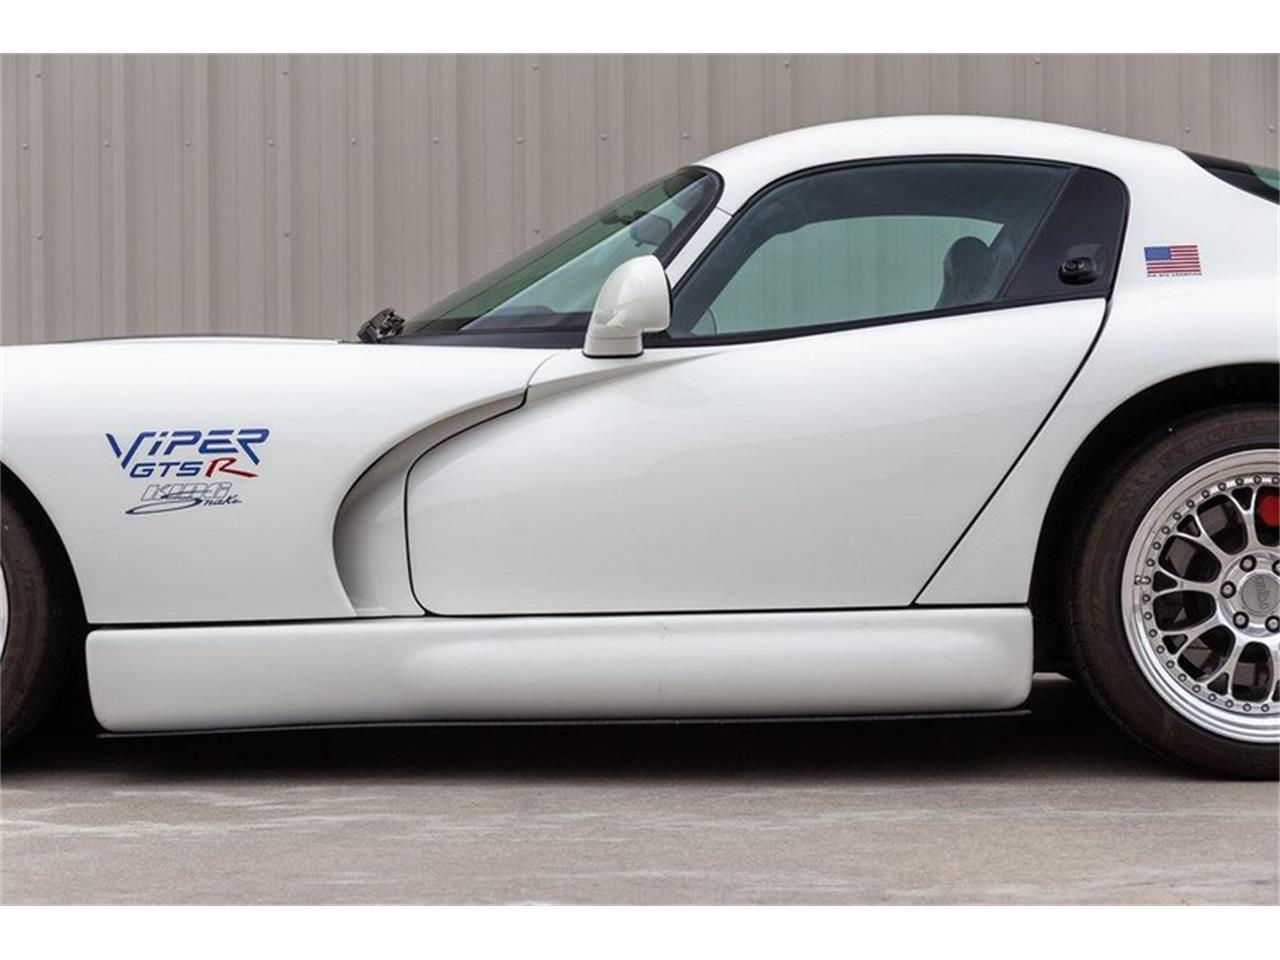 1998 Dodge Viper for sale in Lincoln, NE – photo 44